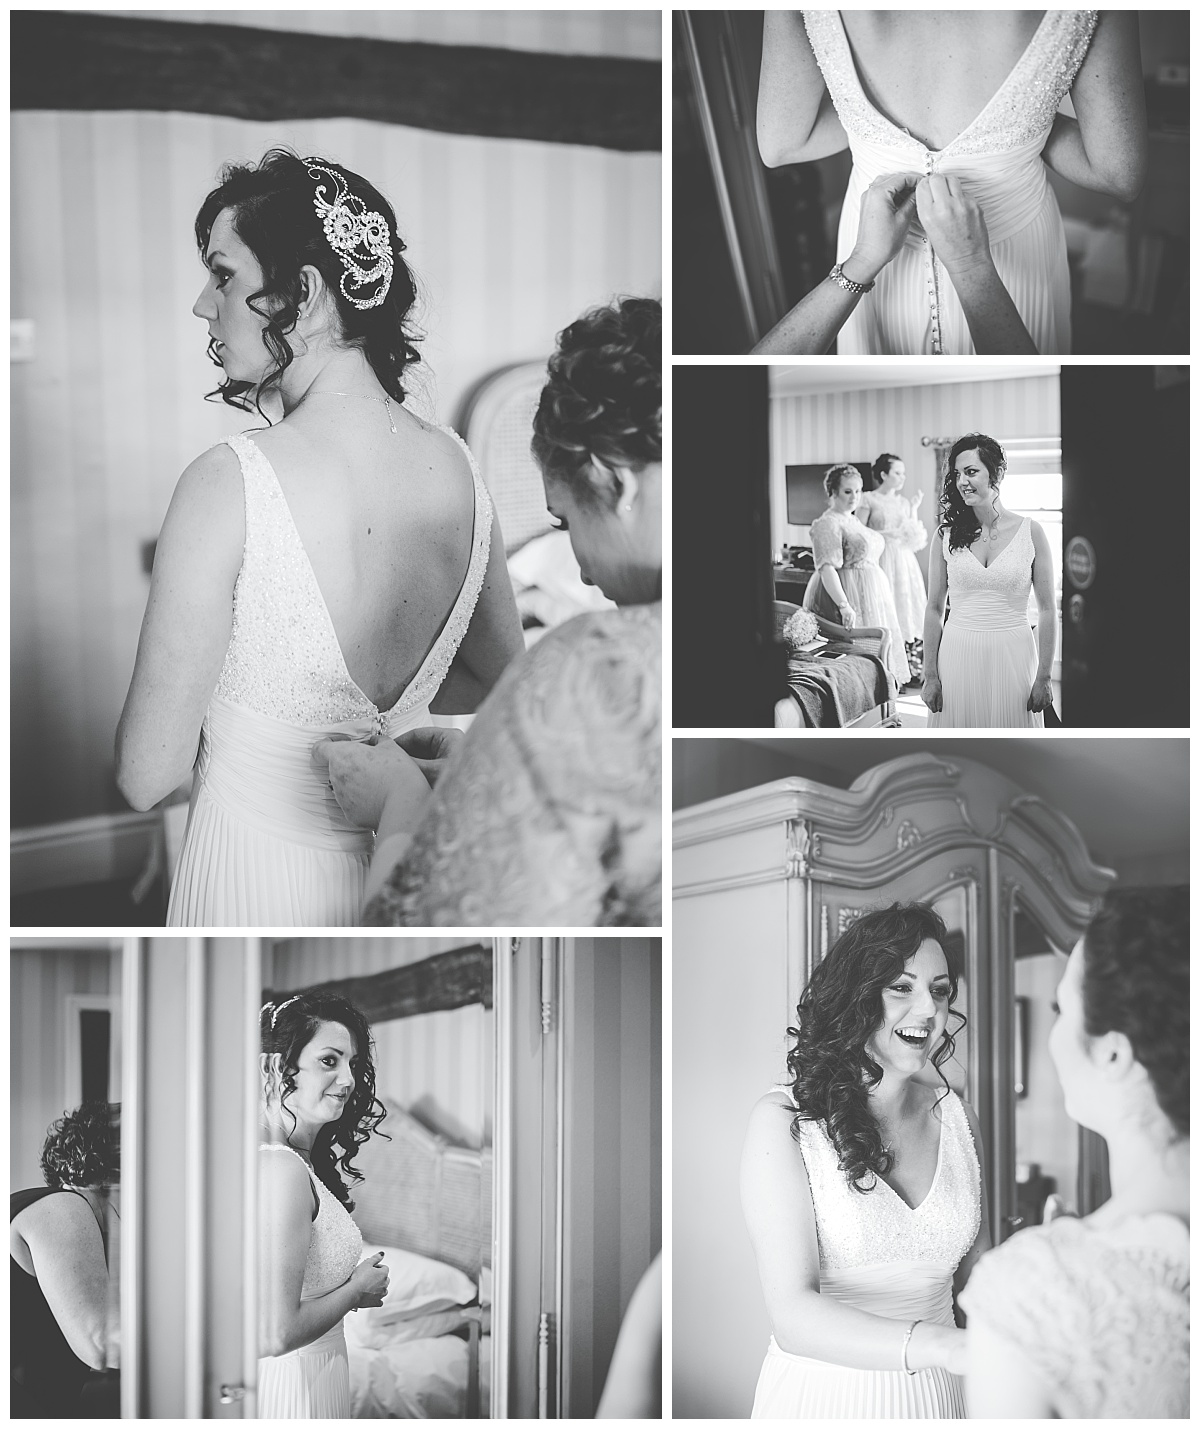 bride getting dressed - wedding photographer in Lancashire at Shireburn Arms wedding